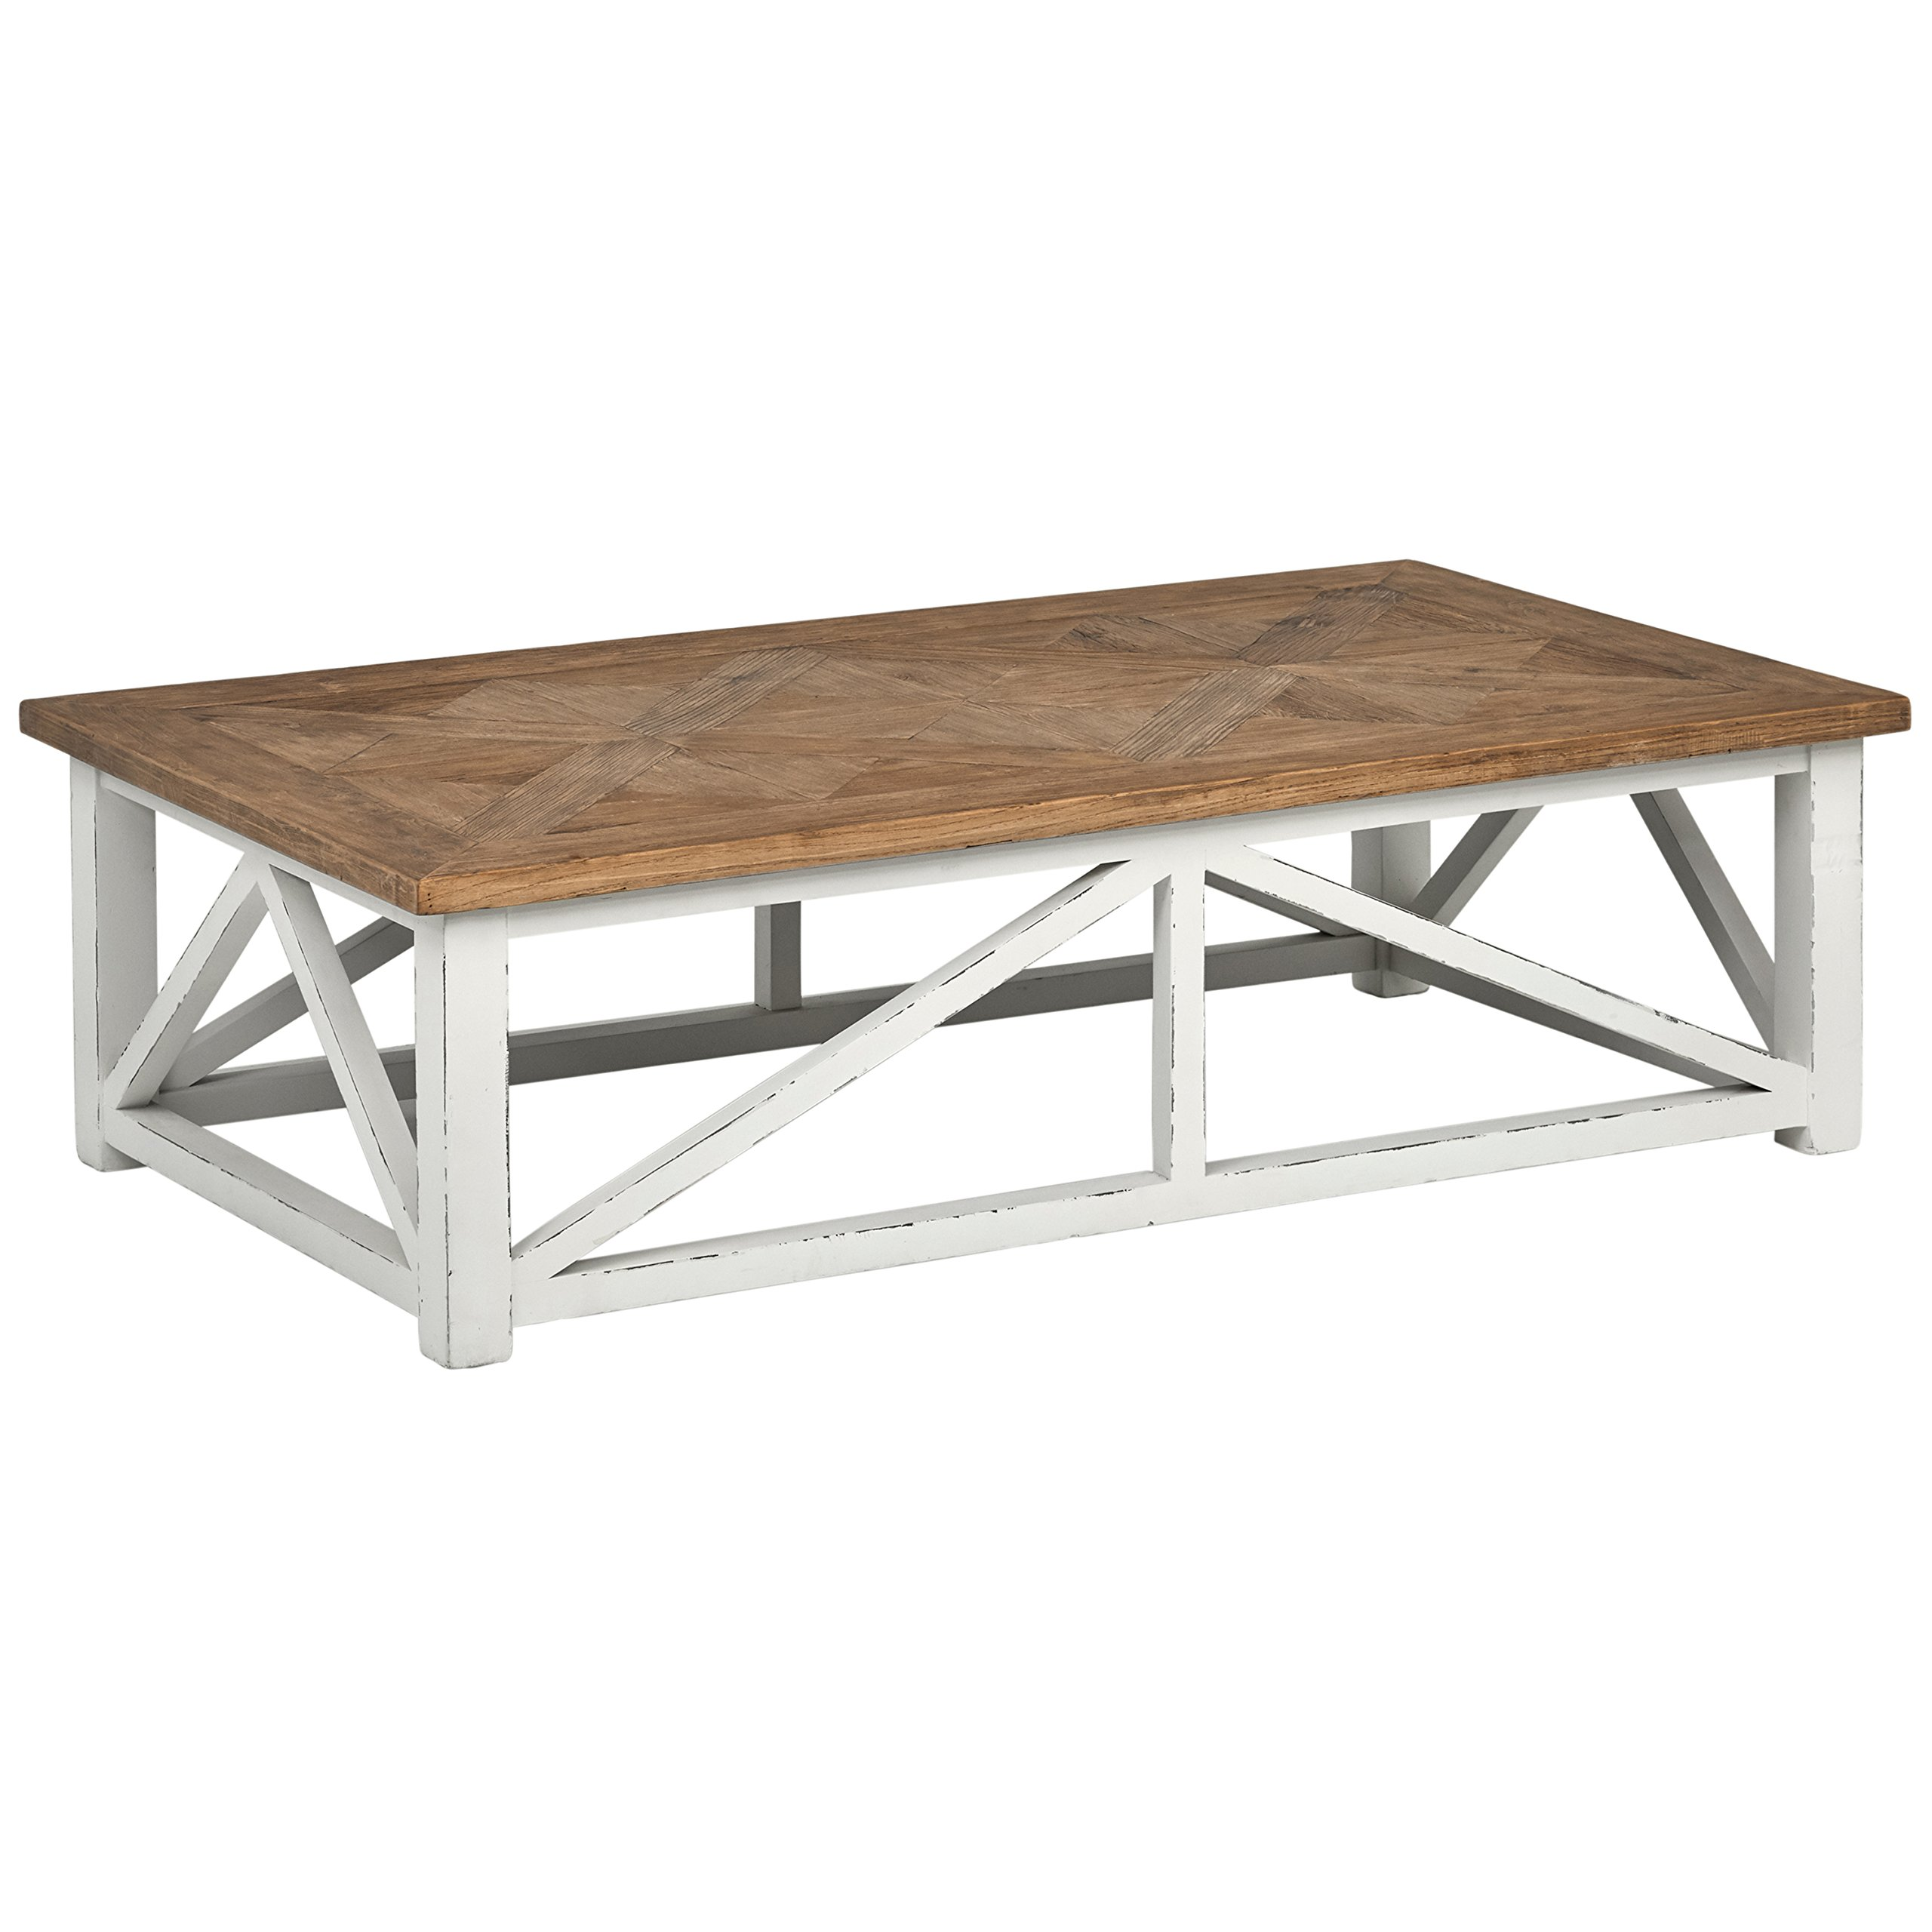 Stone & Beam Coastal Breeze Coffee Table, 55.1'' W, Natural and White